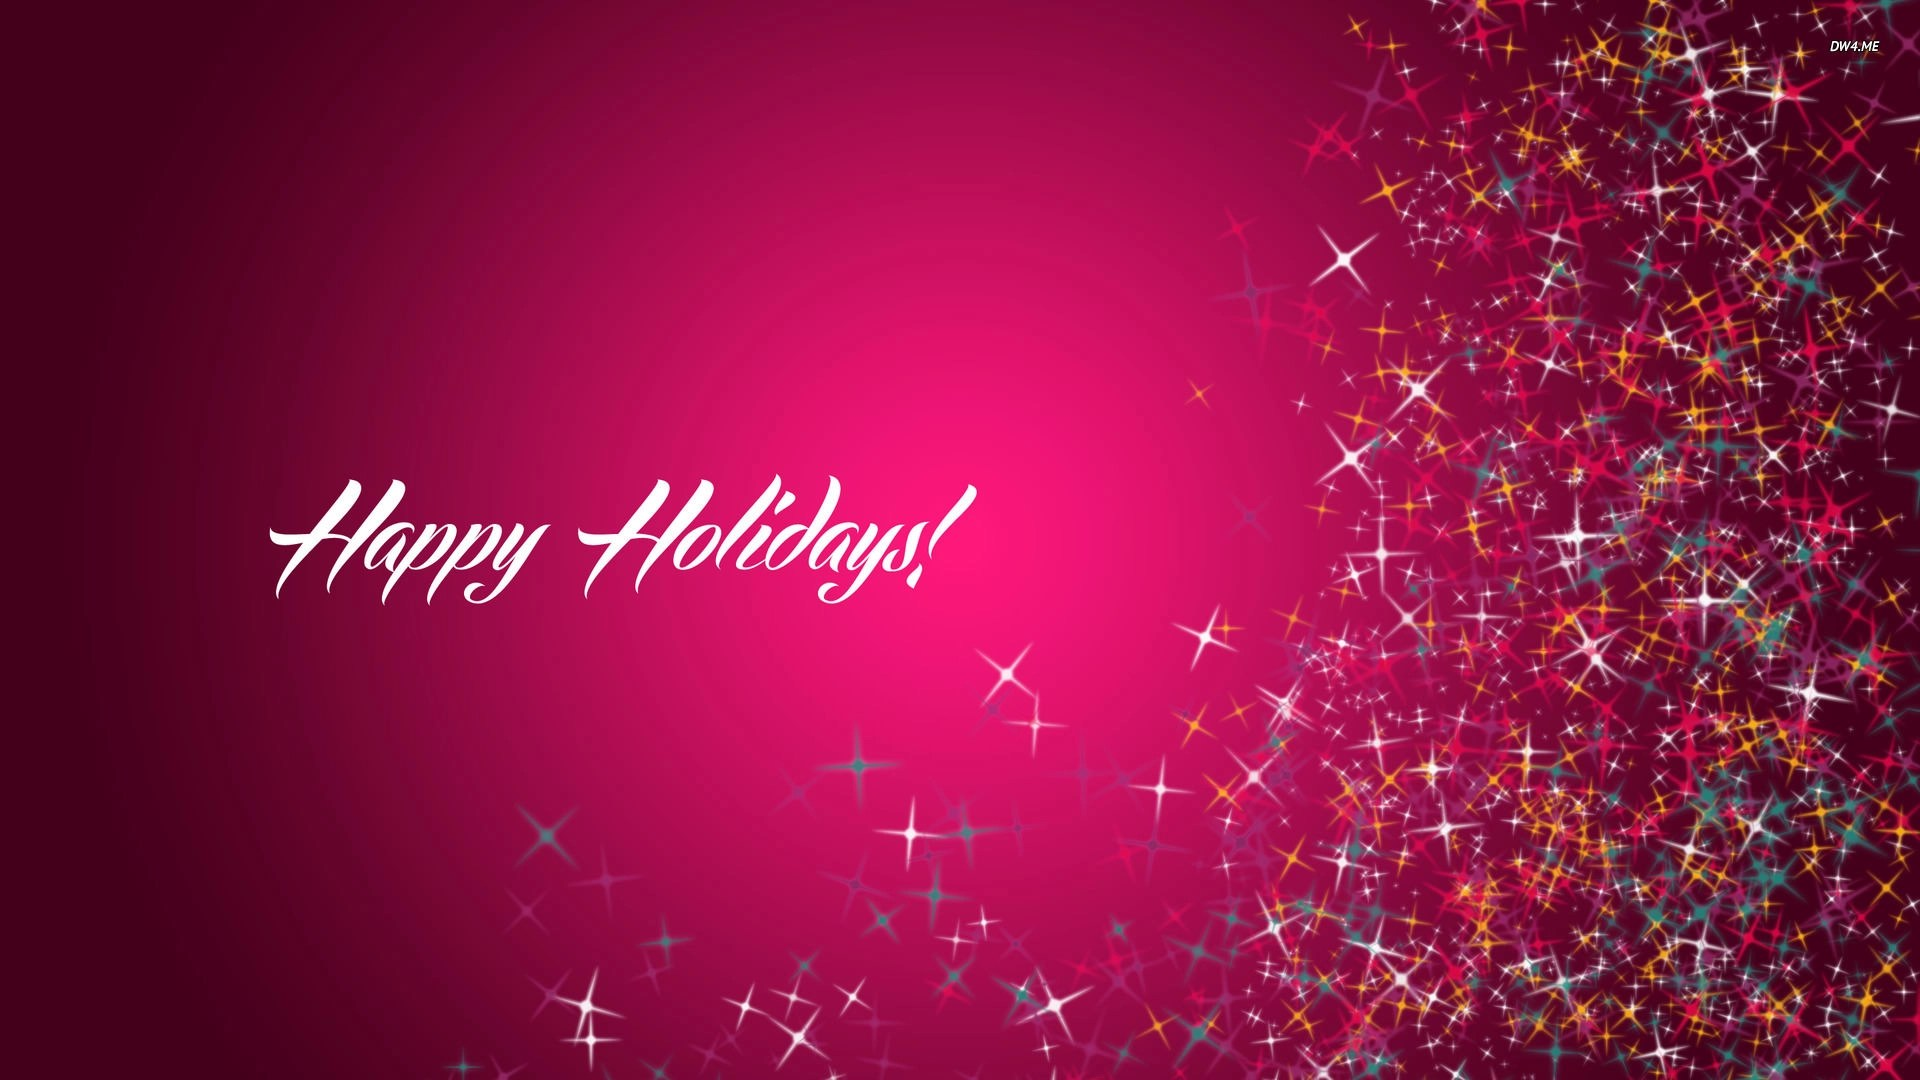 22+ Holiday Wallpapers, Backgrounds, Images  Freecreatives